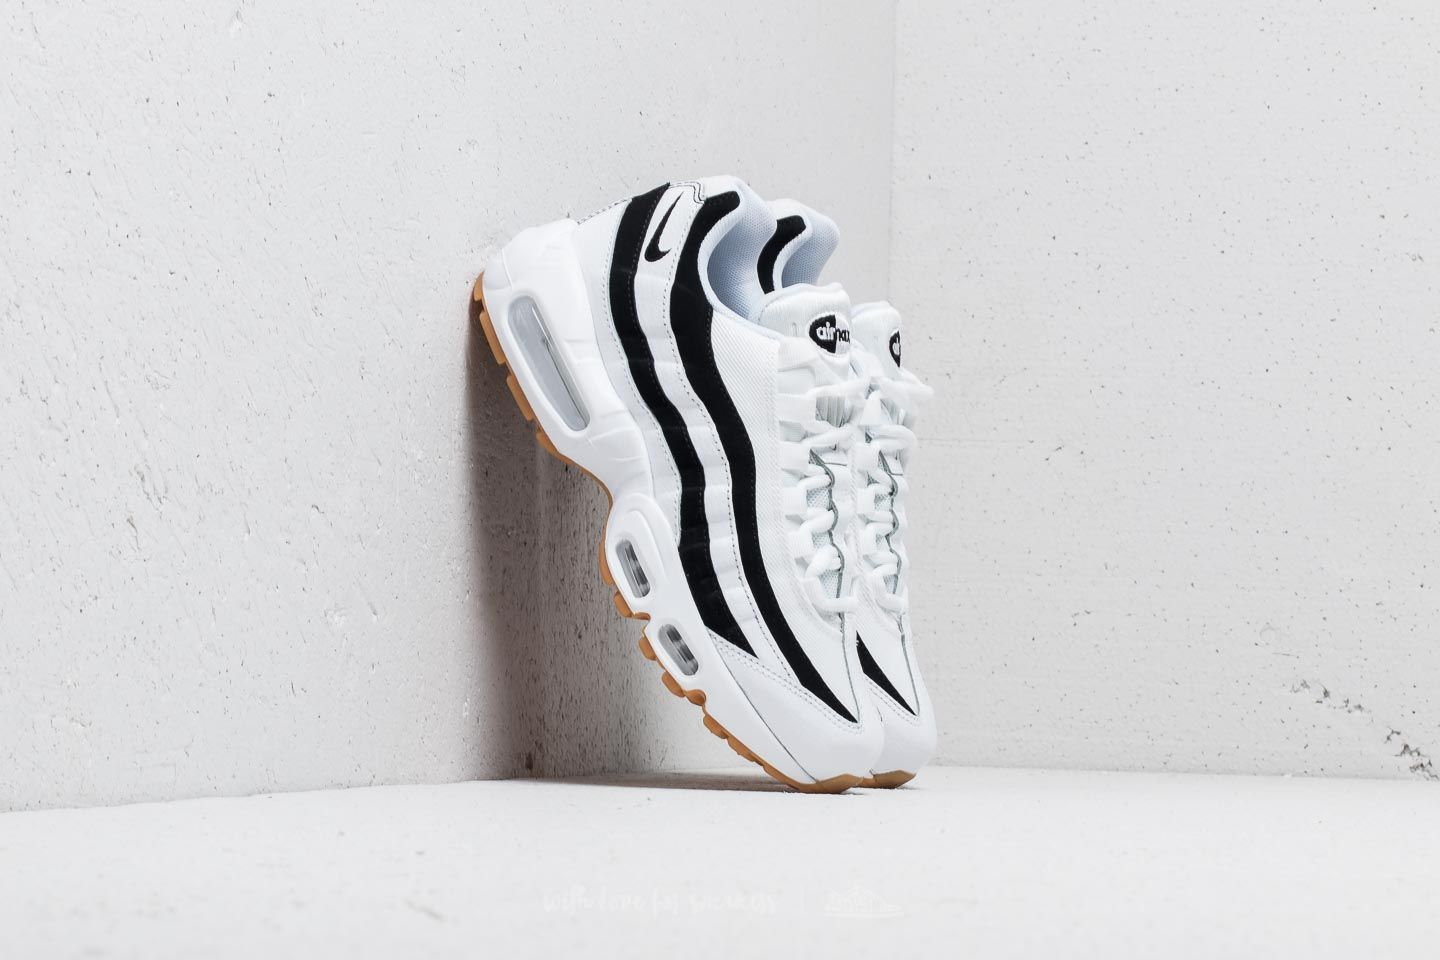 100% authentic 742e7 e0db9 Nike Wmns Air Max 95 White  Black-Gum Light Brown at a great price